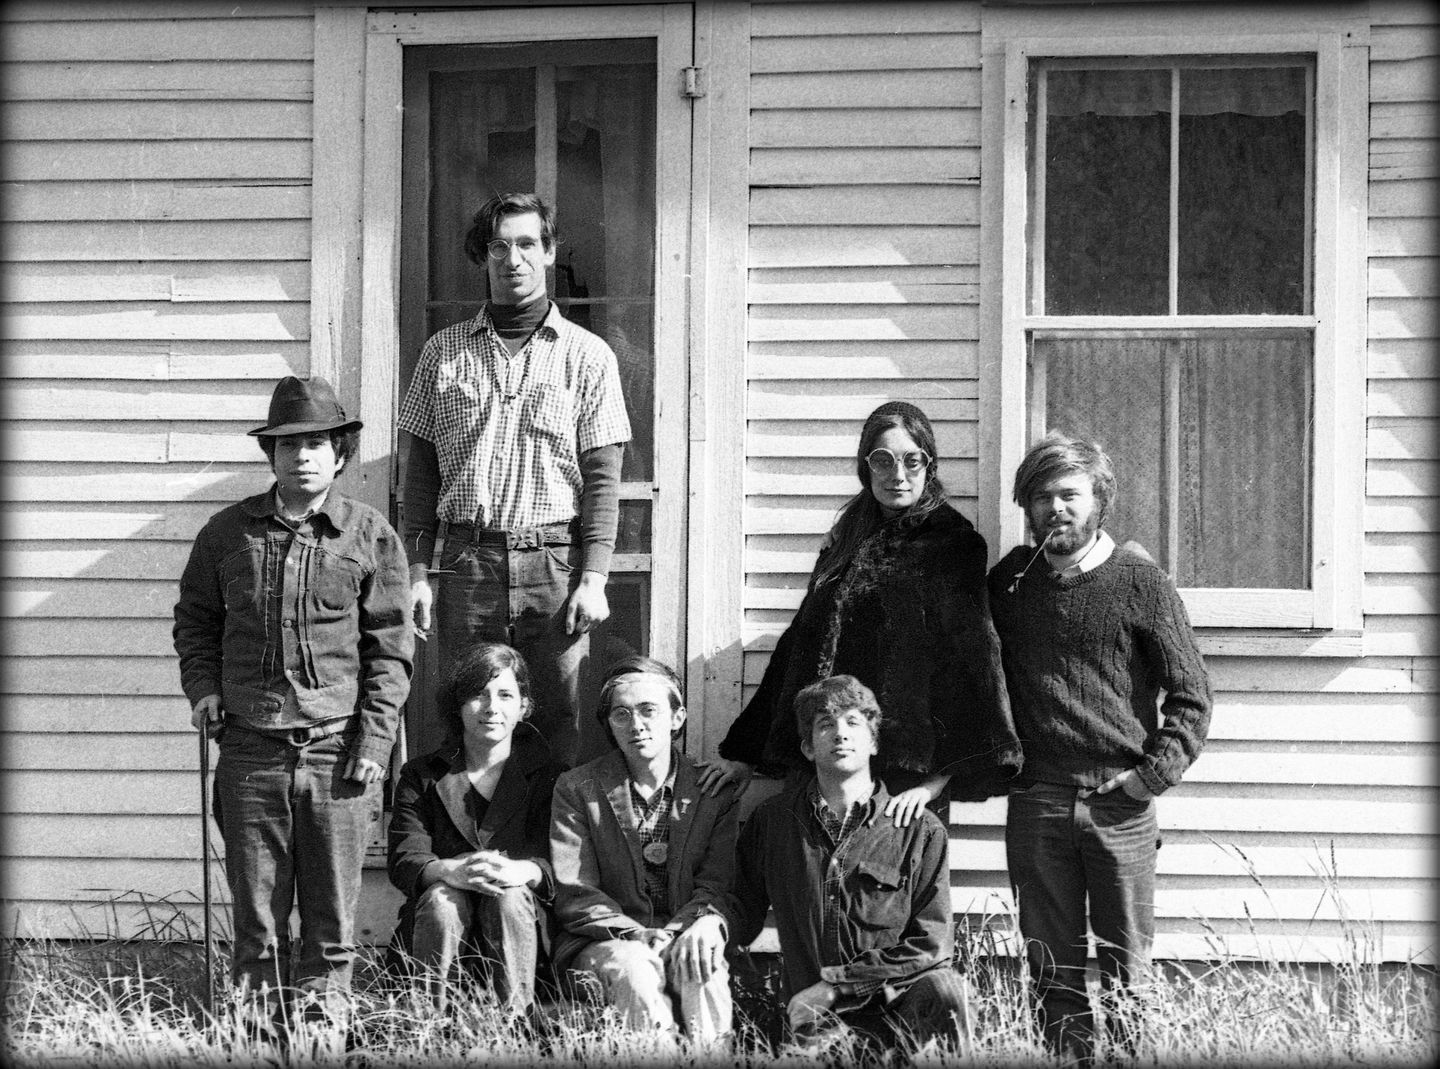 The pioneers of Total Loss Farm pose on the doorstep of the farmhouse. Sitting, from left: Michelle Clarke, Ray Mungo, and Peter Simon. Standing, from left: Richard Wizansky, Marty Jezer, Verandah Porche,  and Laurie Miller.